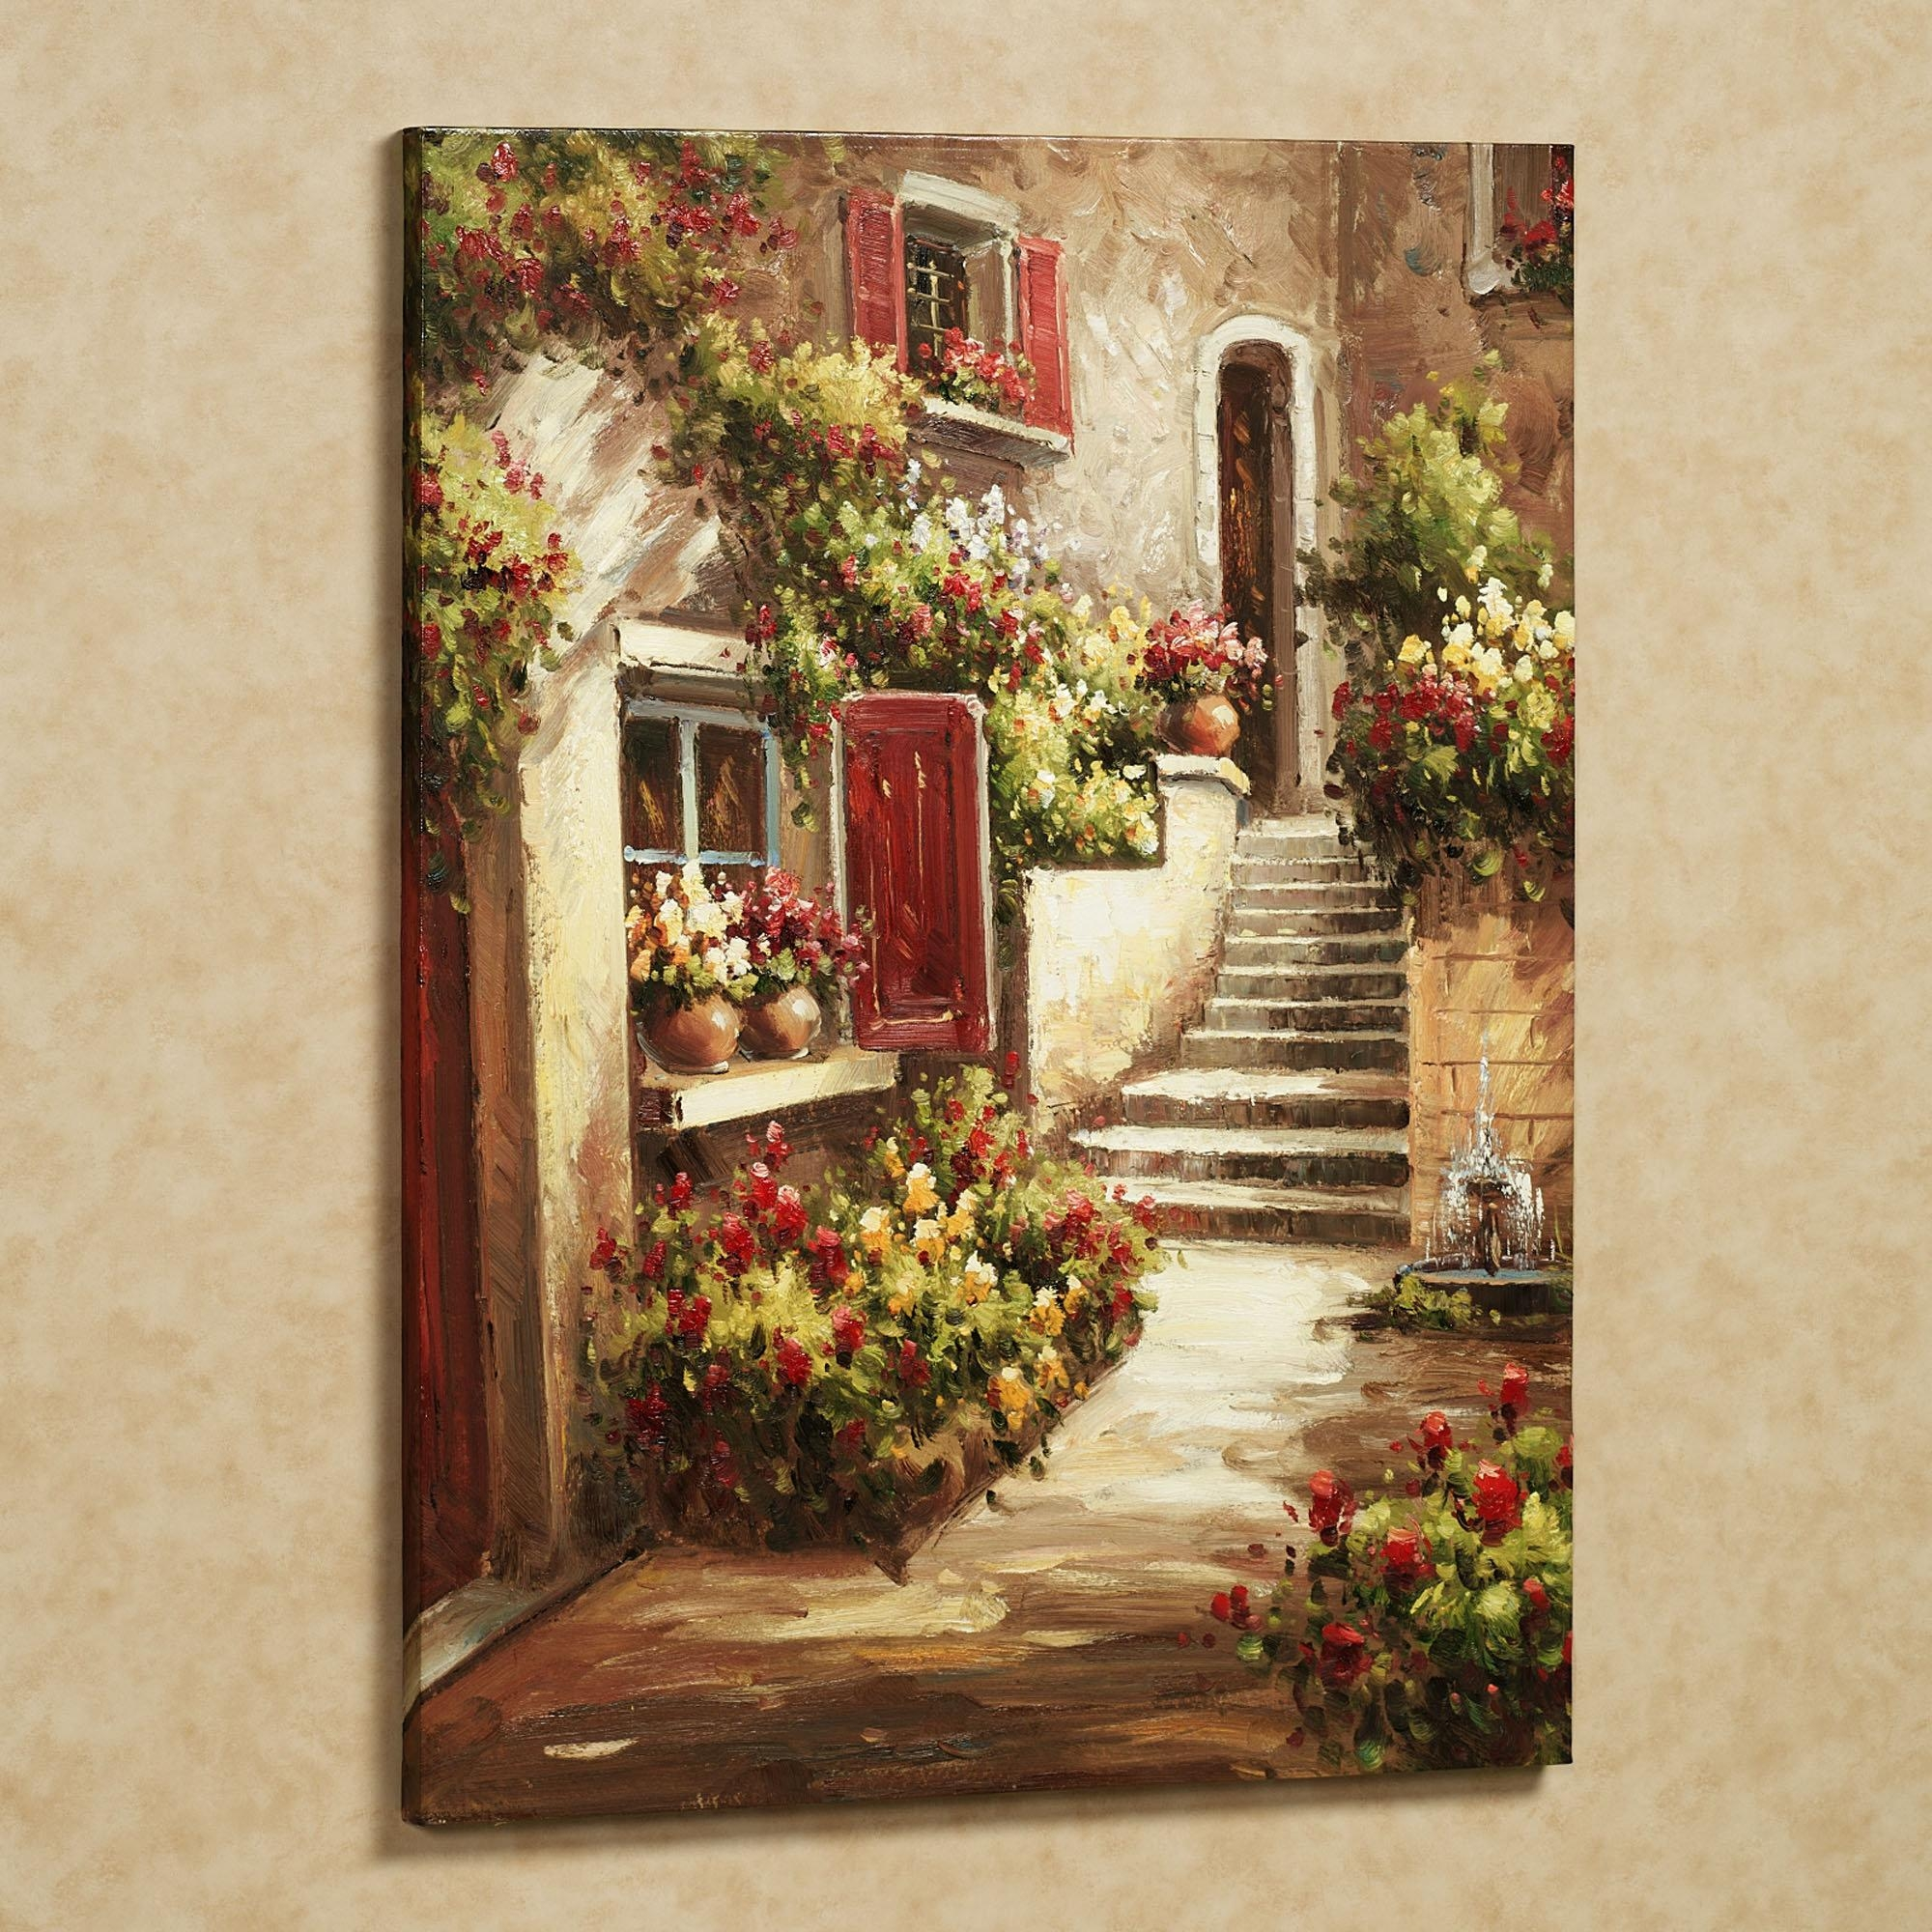 Wall Art Ideas Design : Rome Door Italian Wall Art Italy Printable Intended For Italian Outdoor Wall Art (Image 19 of 20)